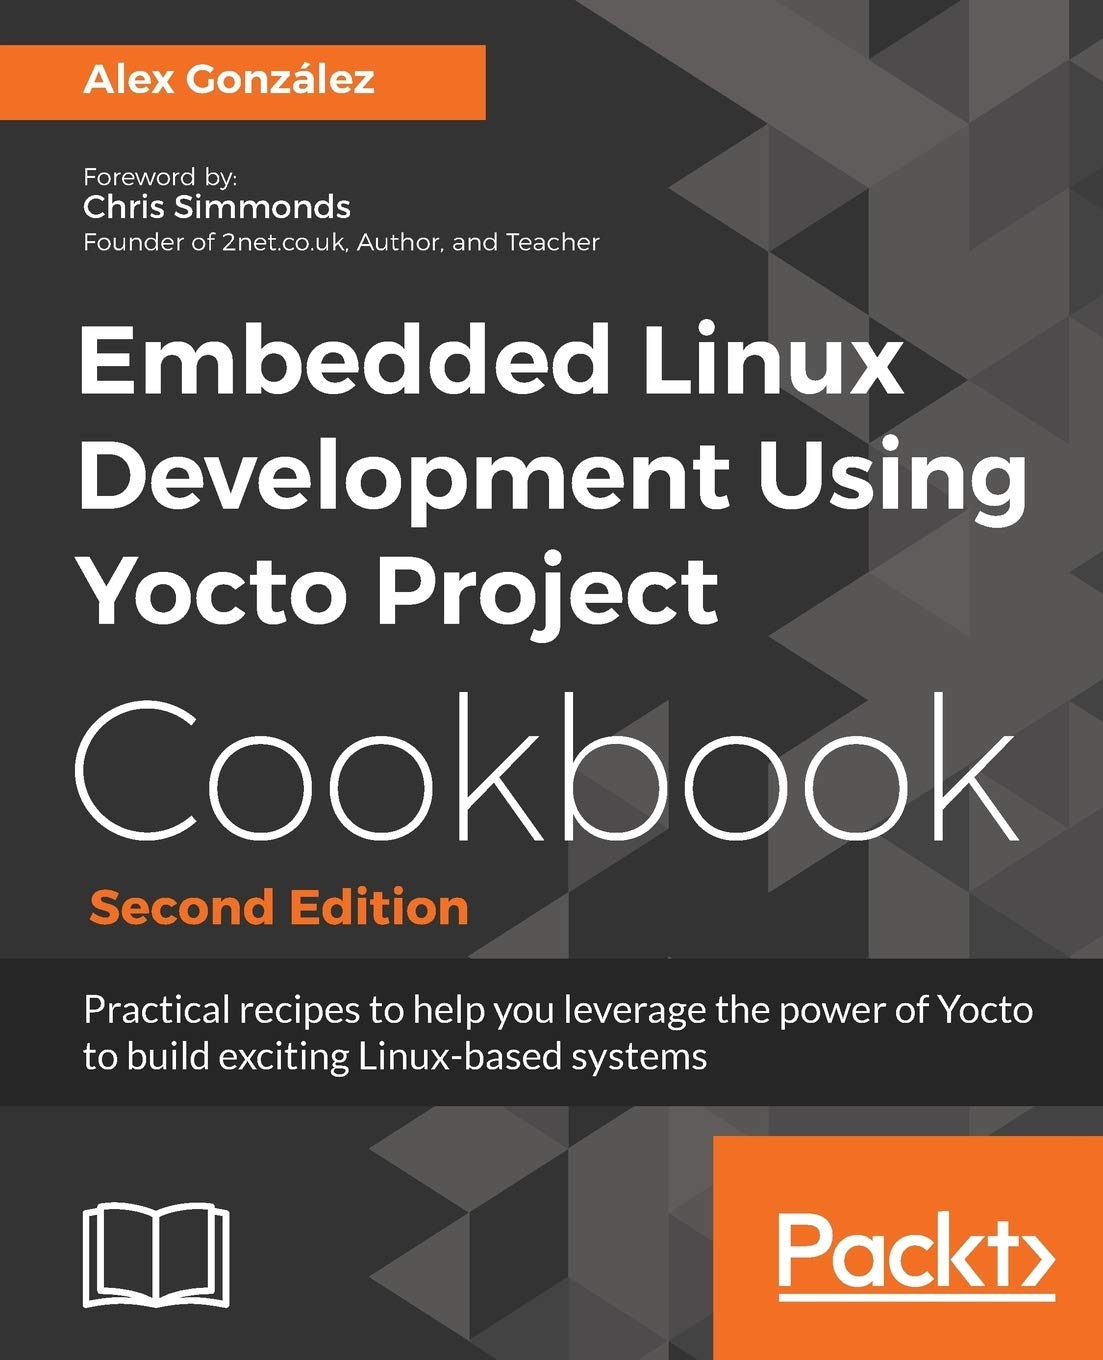 Image OfEmbedded Linux Development Using Yocto Project Cookbook: Practical Recipes To Help You Leverage The Power Of Yocto To Buil...